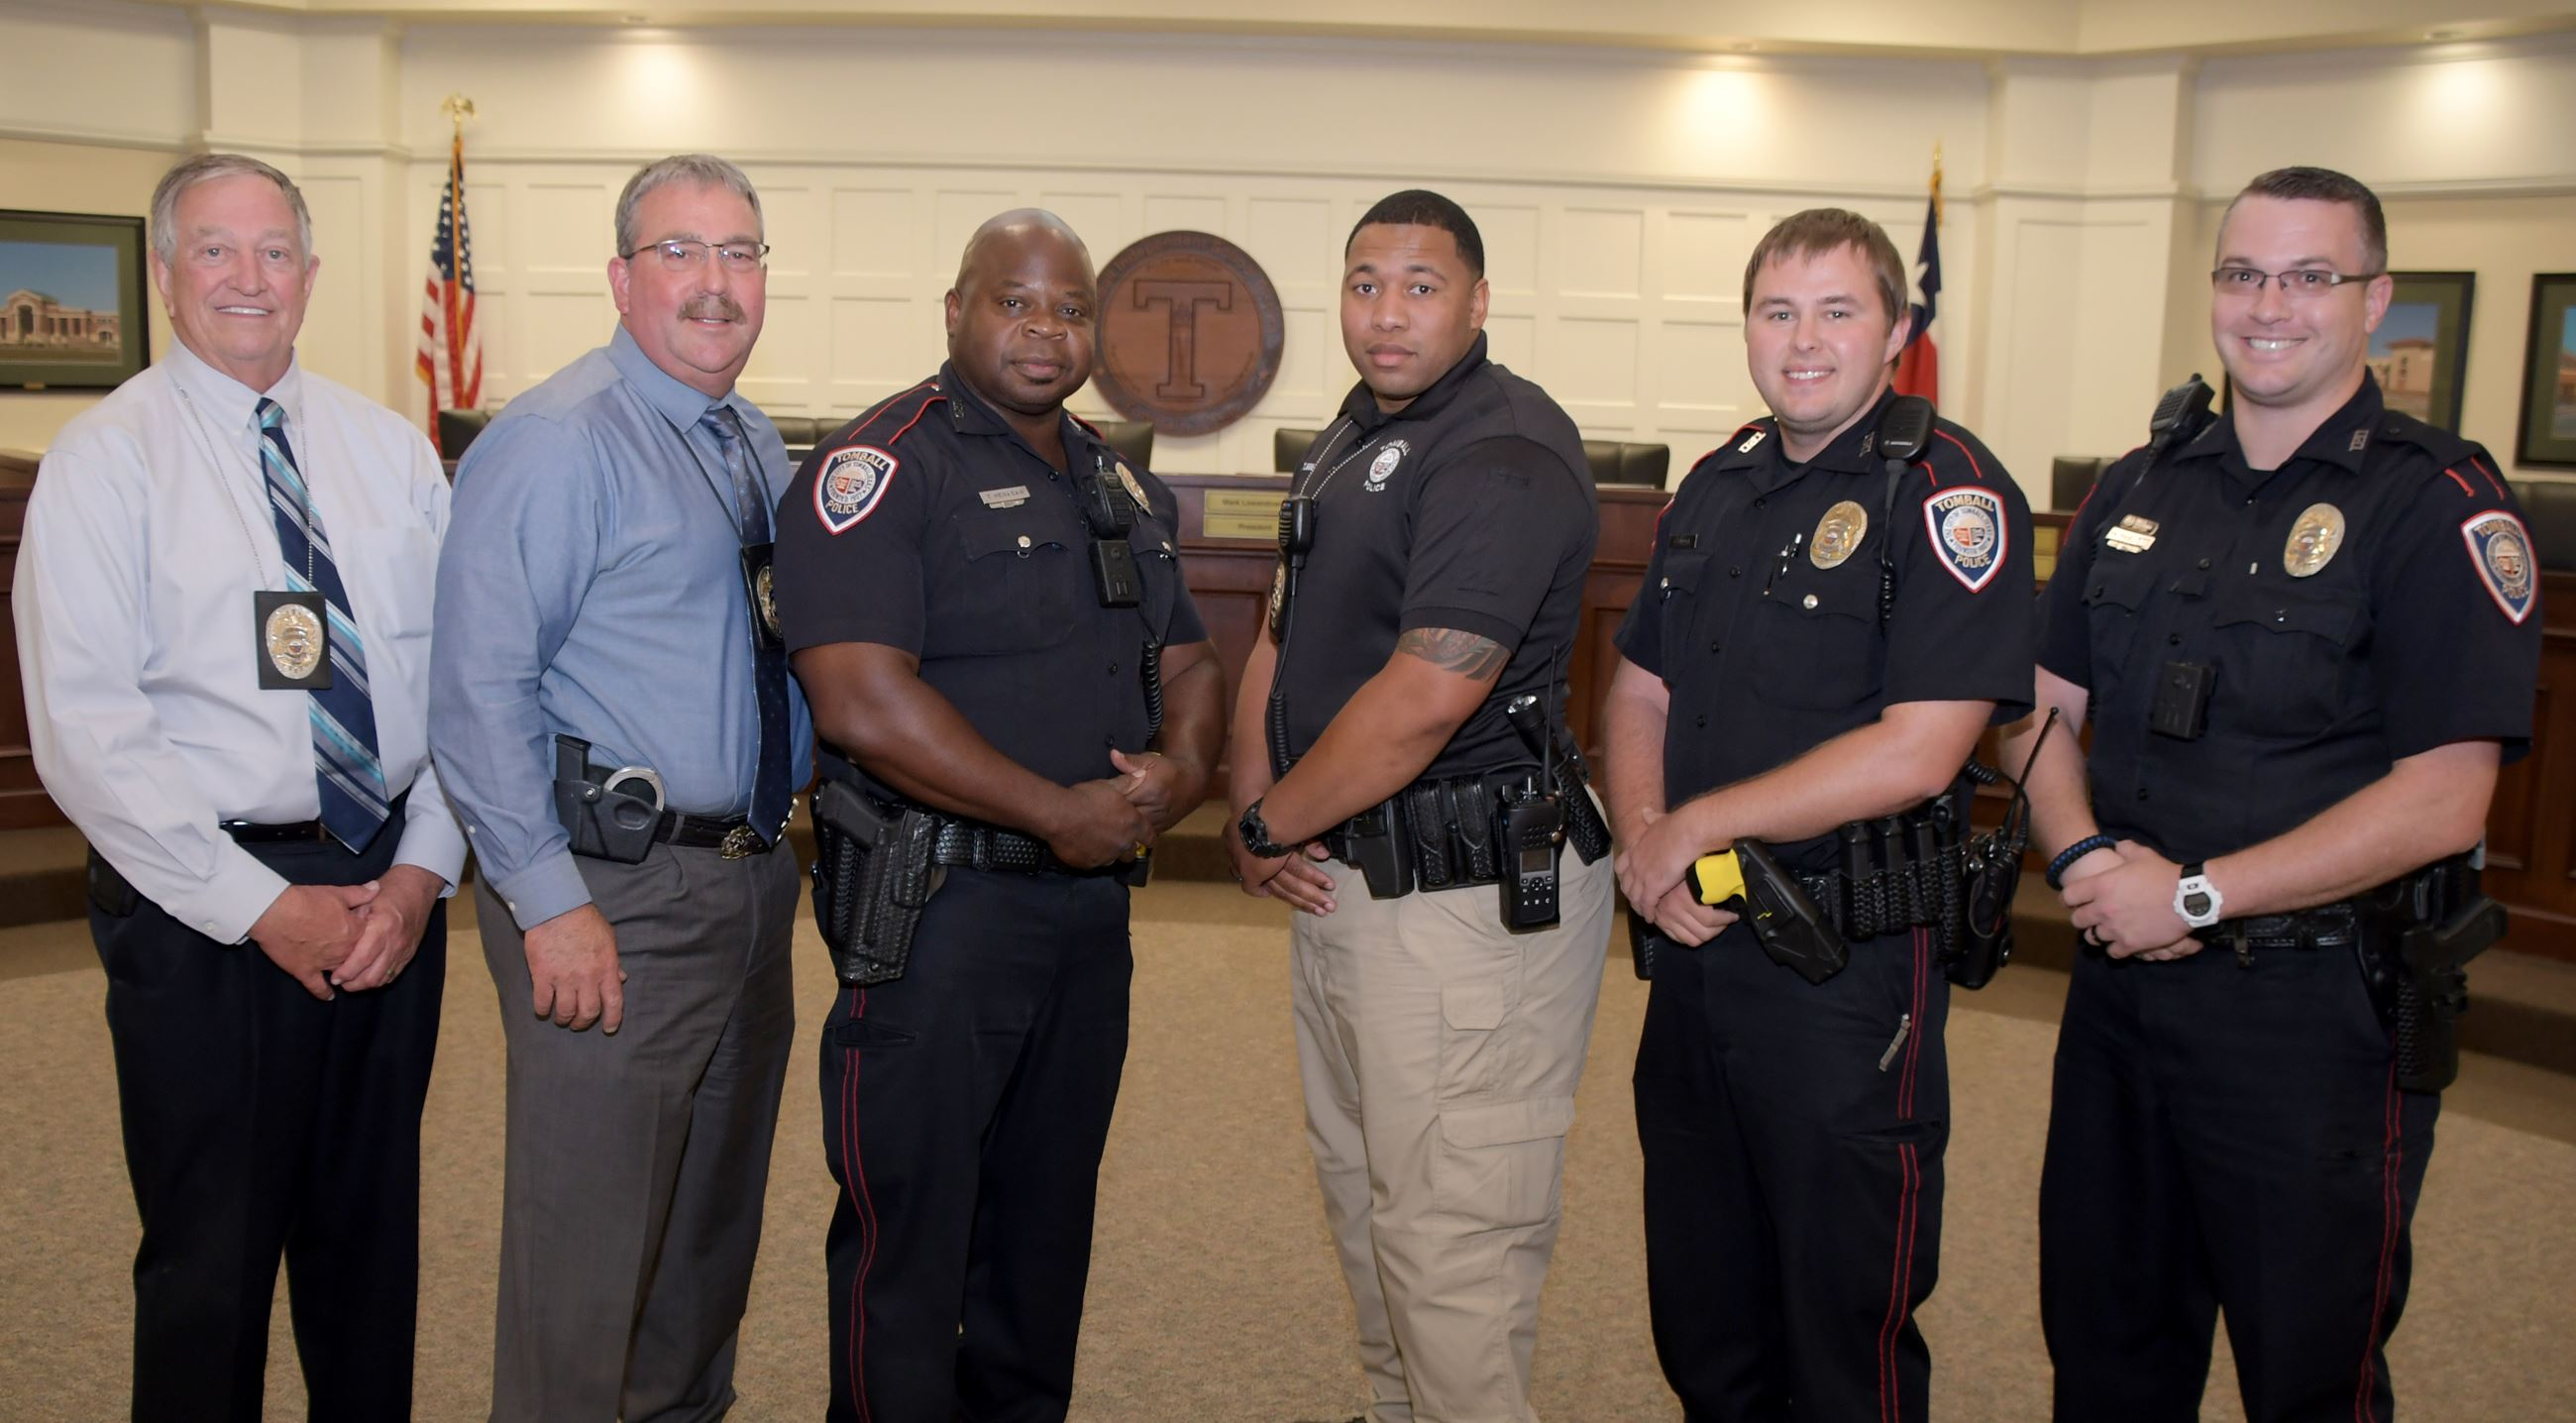 SRO Team image taken at Tomball ISD board room showing six standing men. From left to right, Chief B